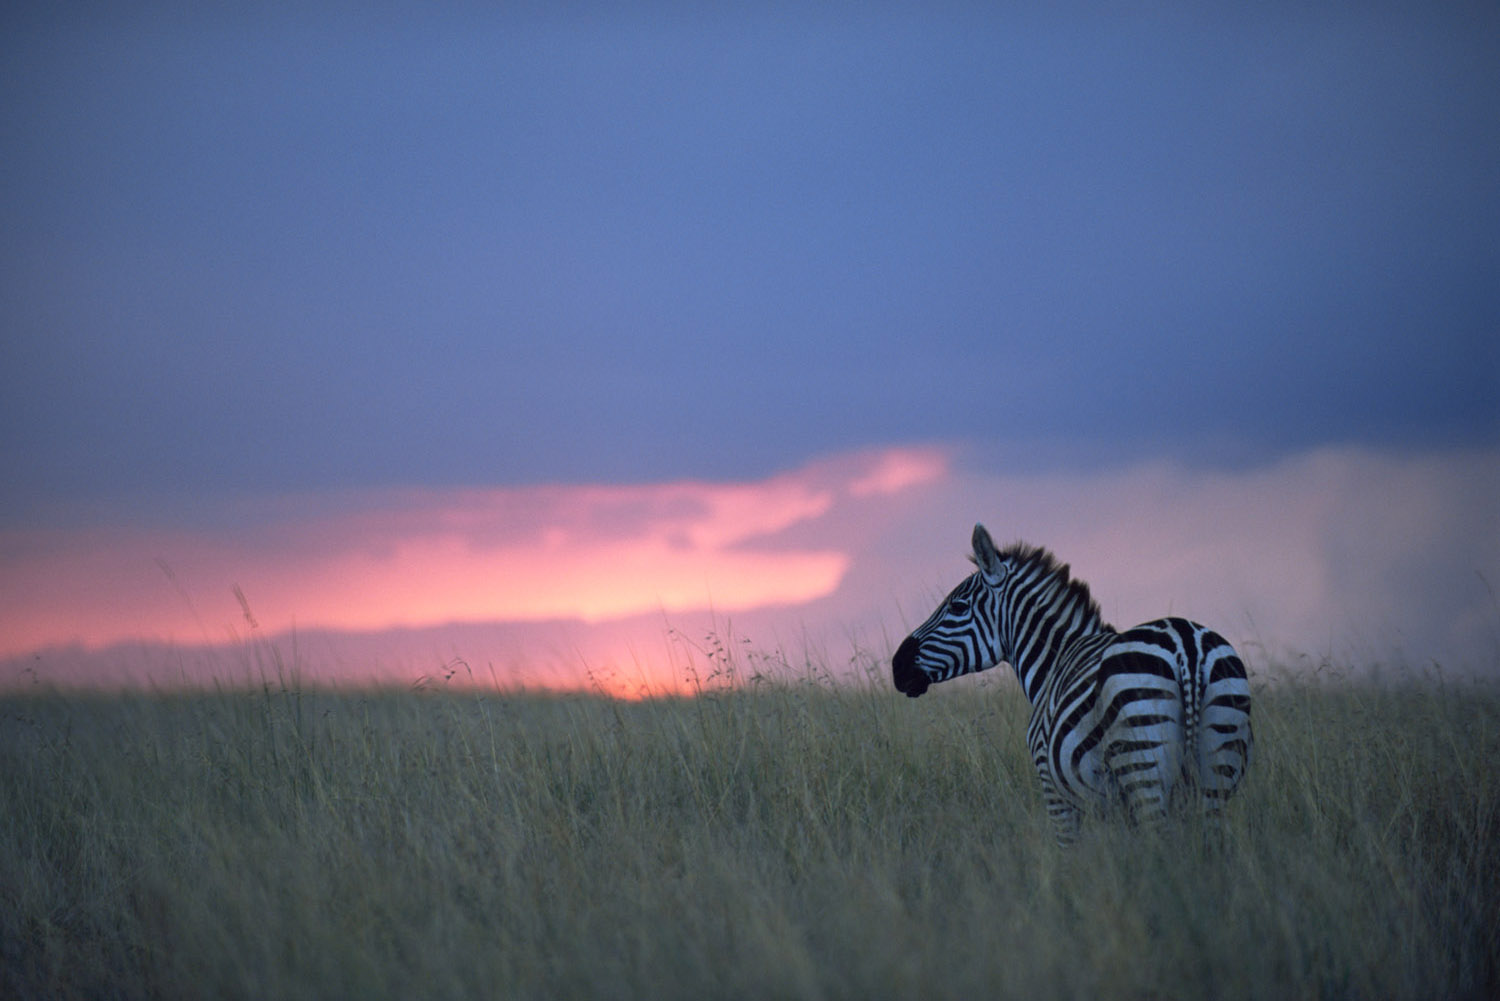 Common zebra at twilight, Masai Mara National Reserve, Kenya